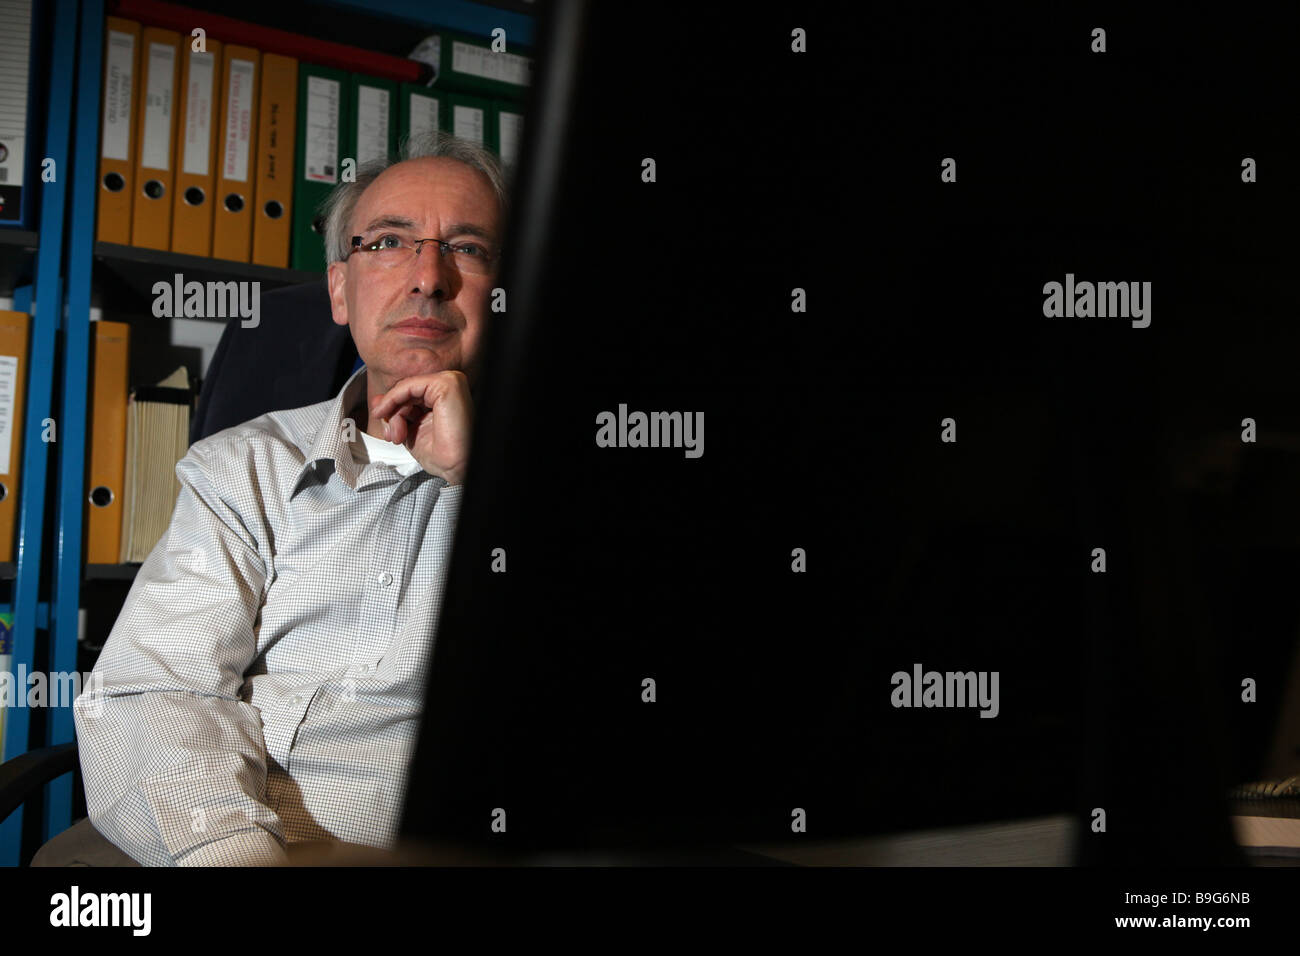 a portrait of a older man sitting in front of a computer looking very learned and thoughtful  there is a bookcase - Stock Image